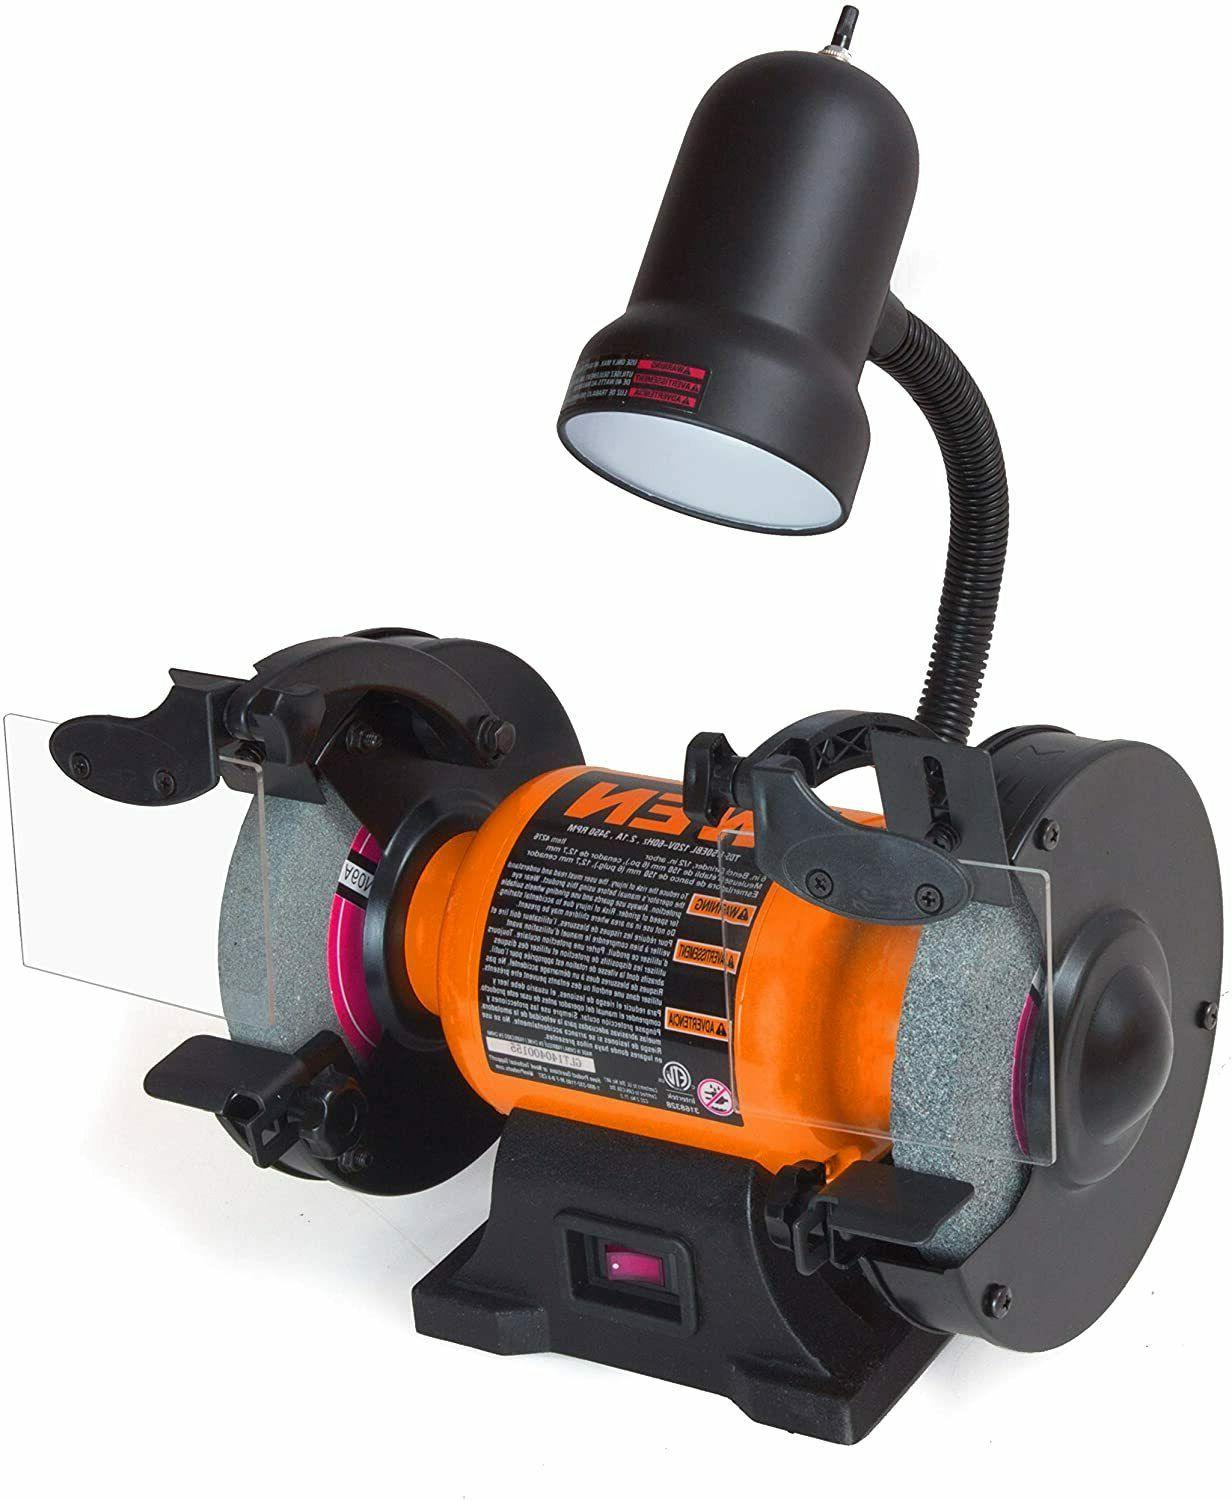 4276 2.1-Amp 6-Inch Bench Grinder with Flexible Work Light